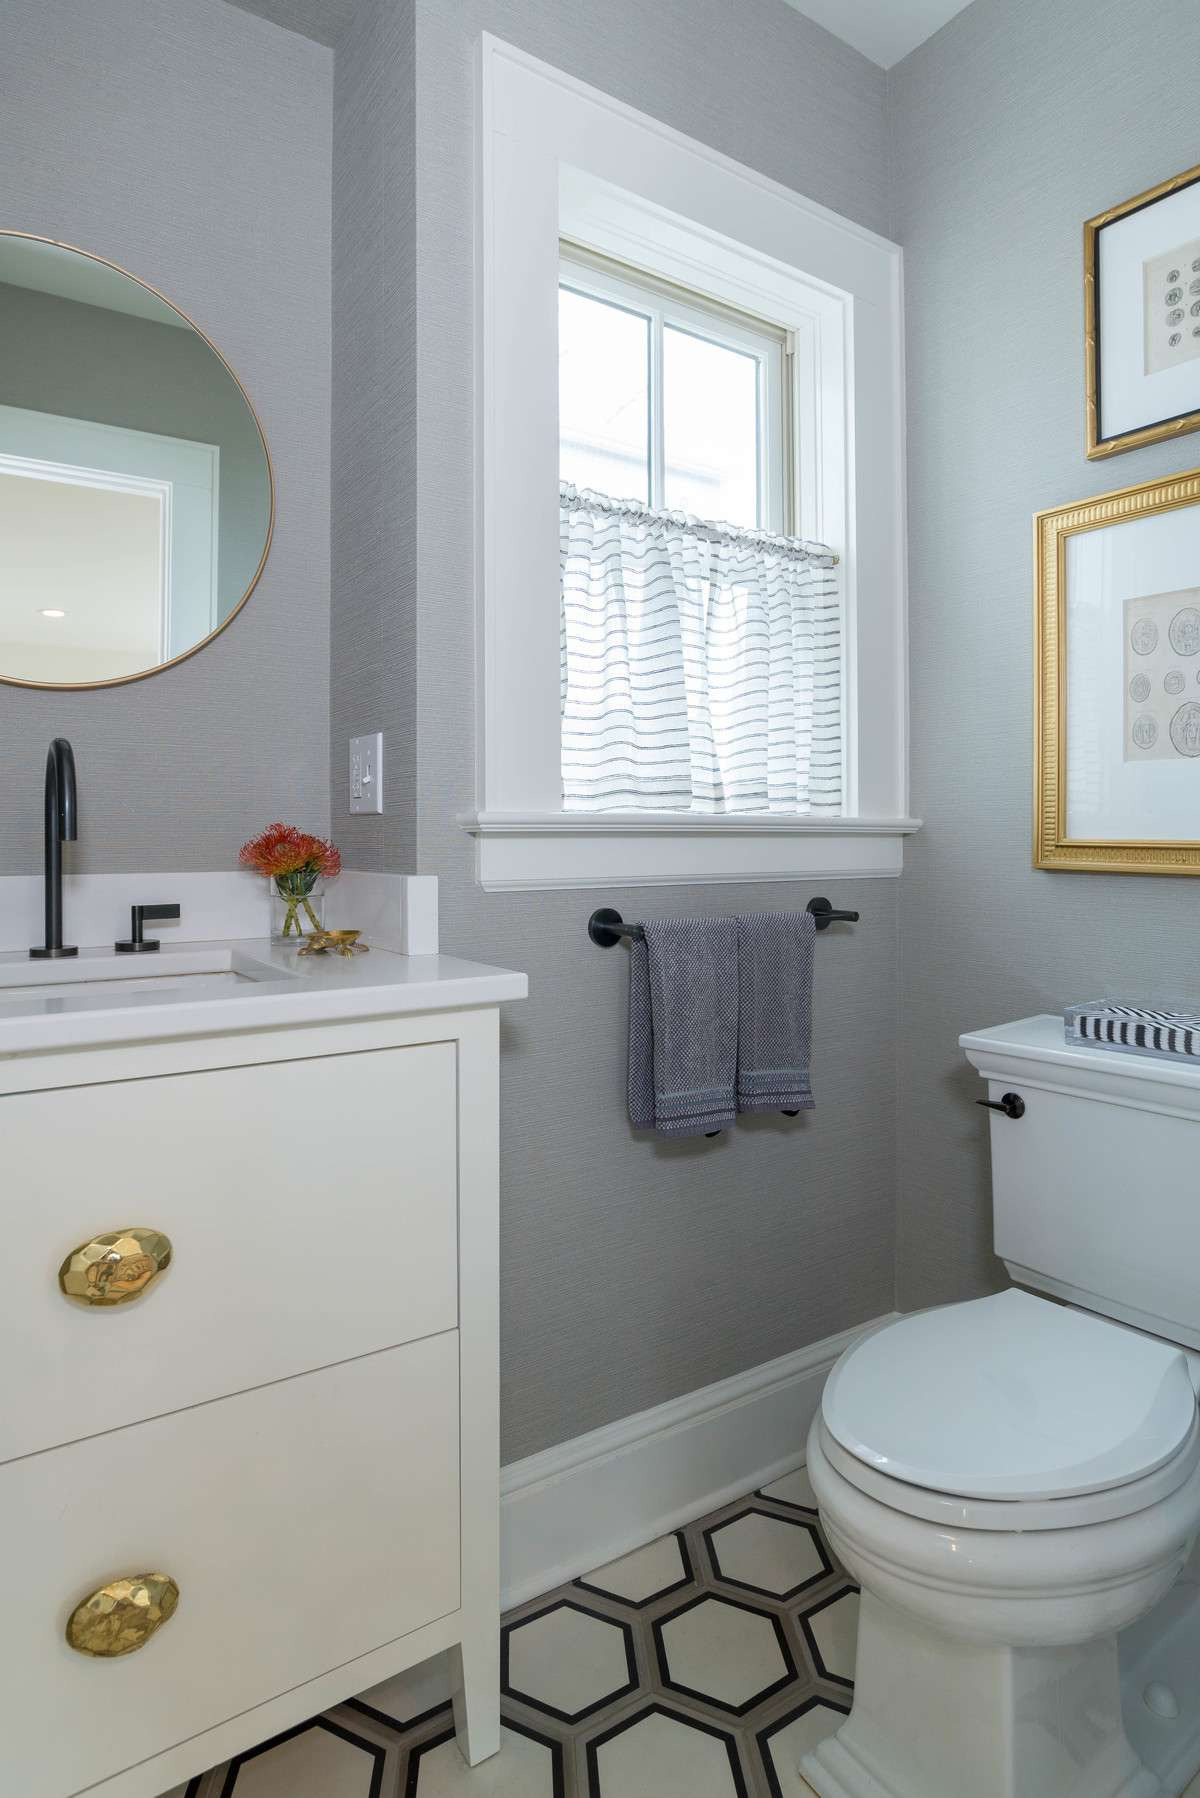 How to Decorate Small Bathrooms New Small Bathrooms Brimming with Style and Function